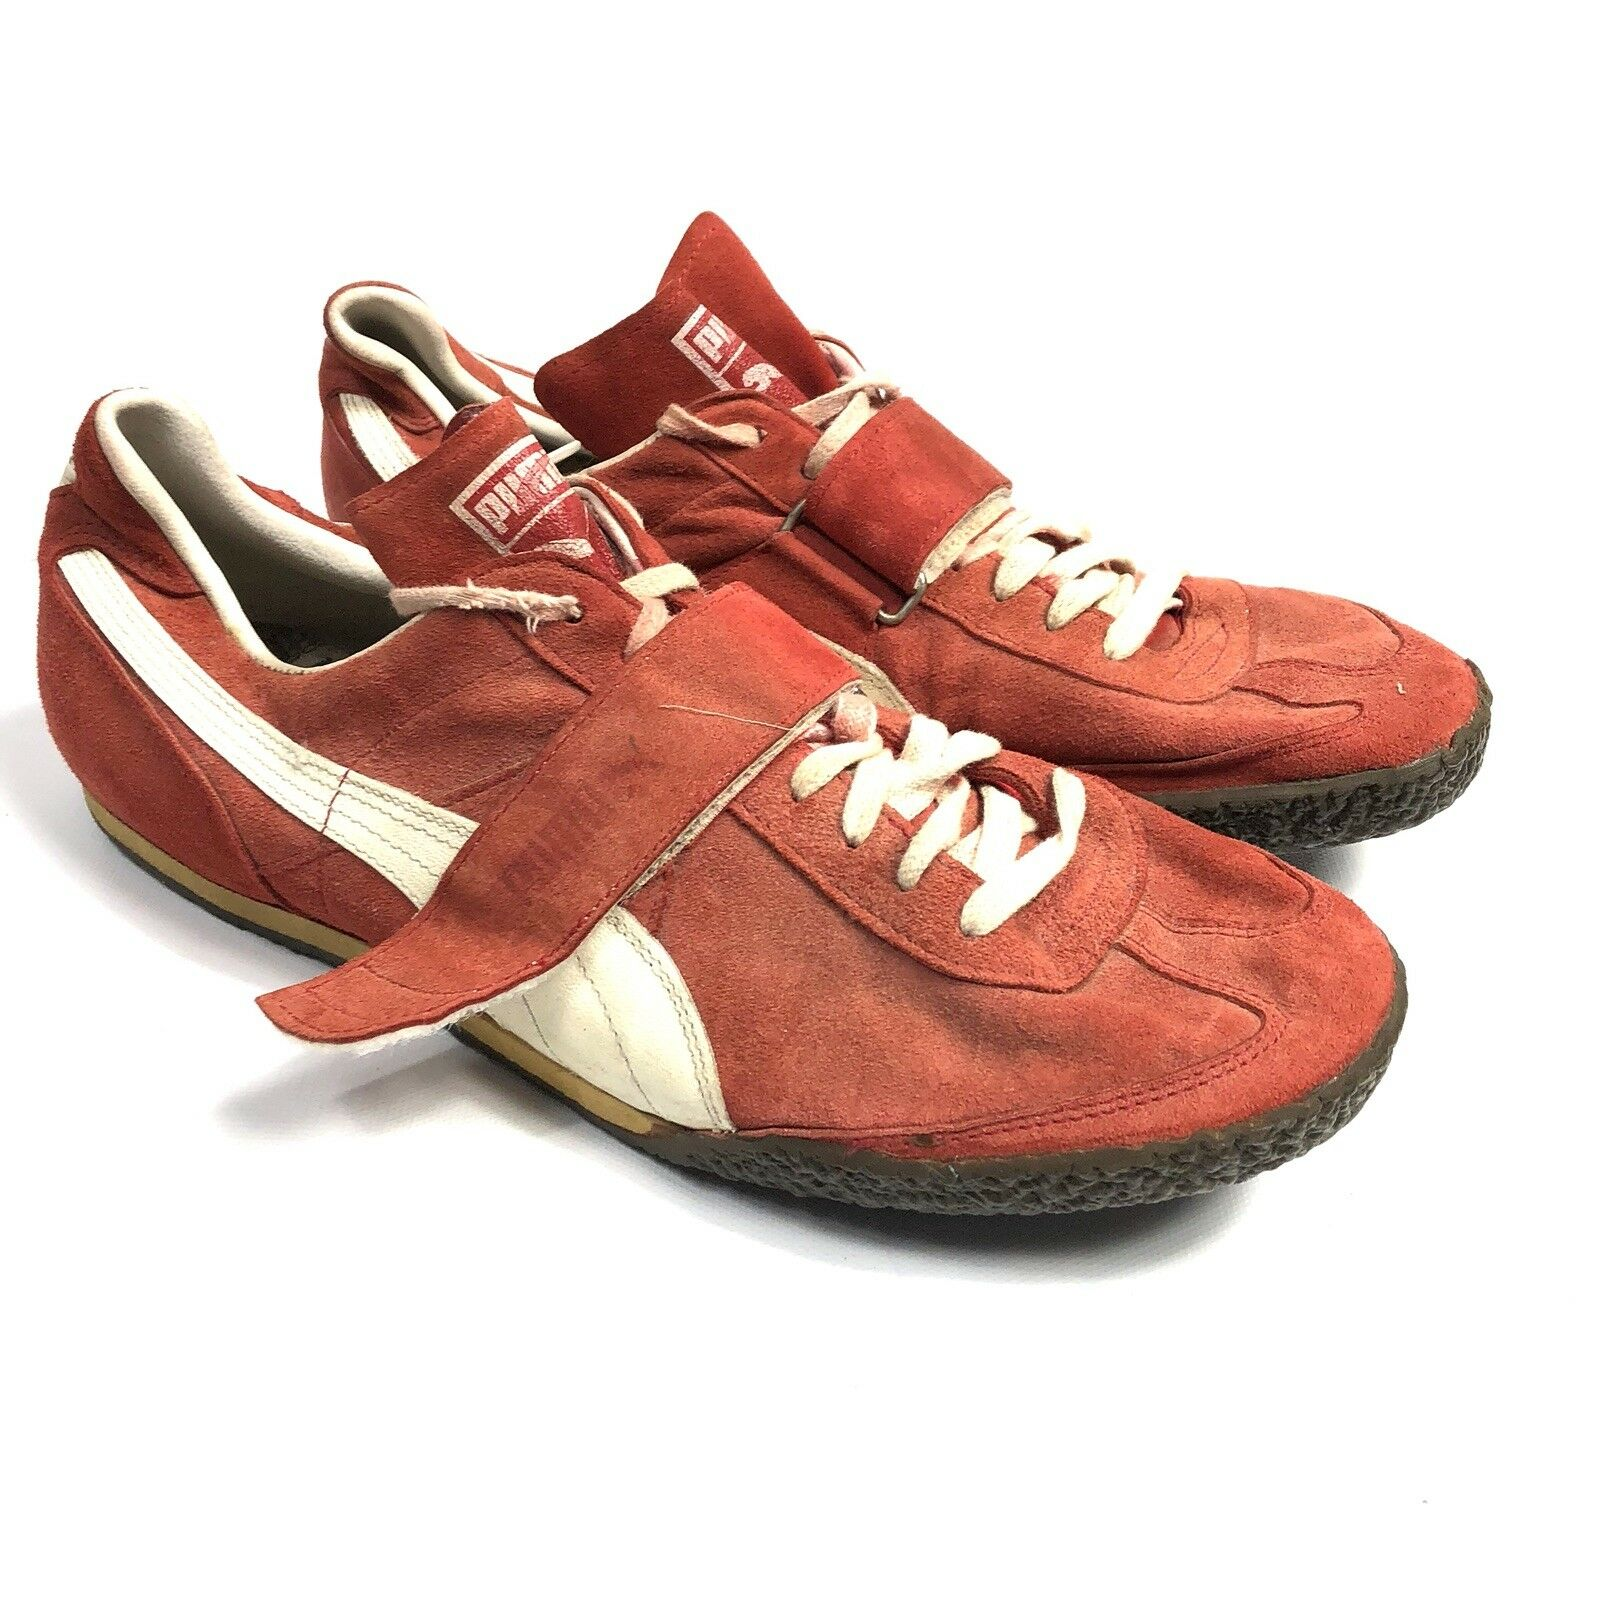 VTG - Puma Red Suede Leather Hook and Loop Athletic shoes - Men's Size 12